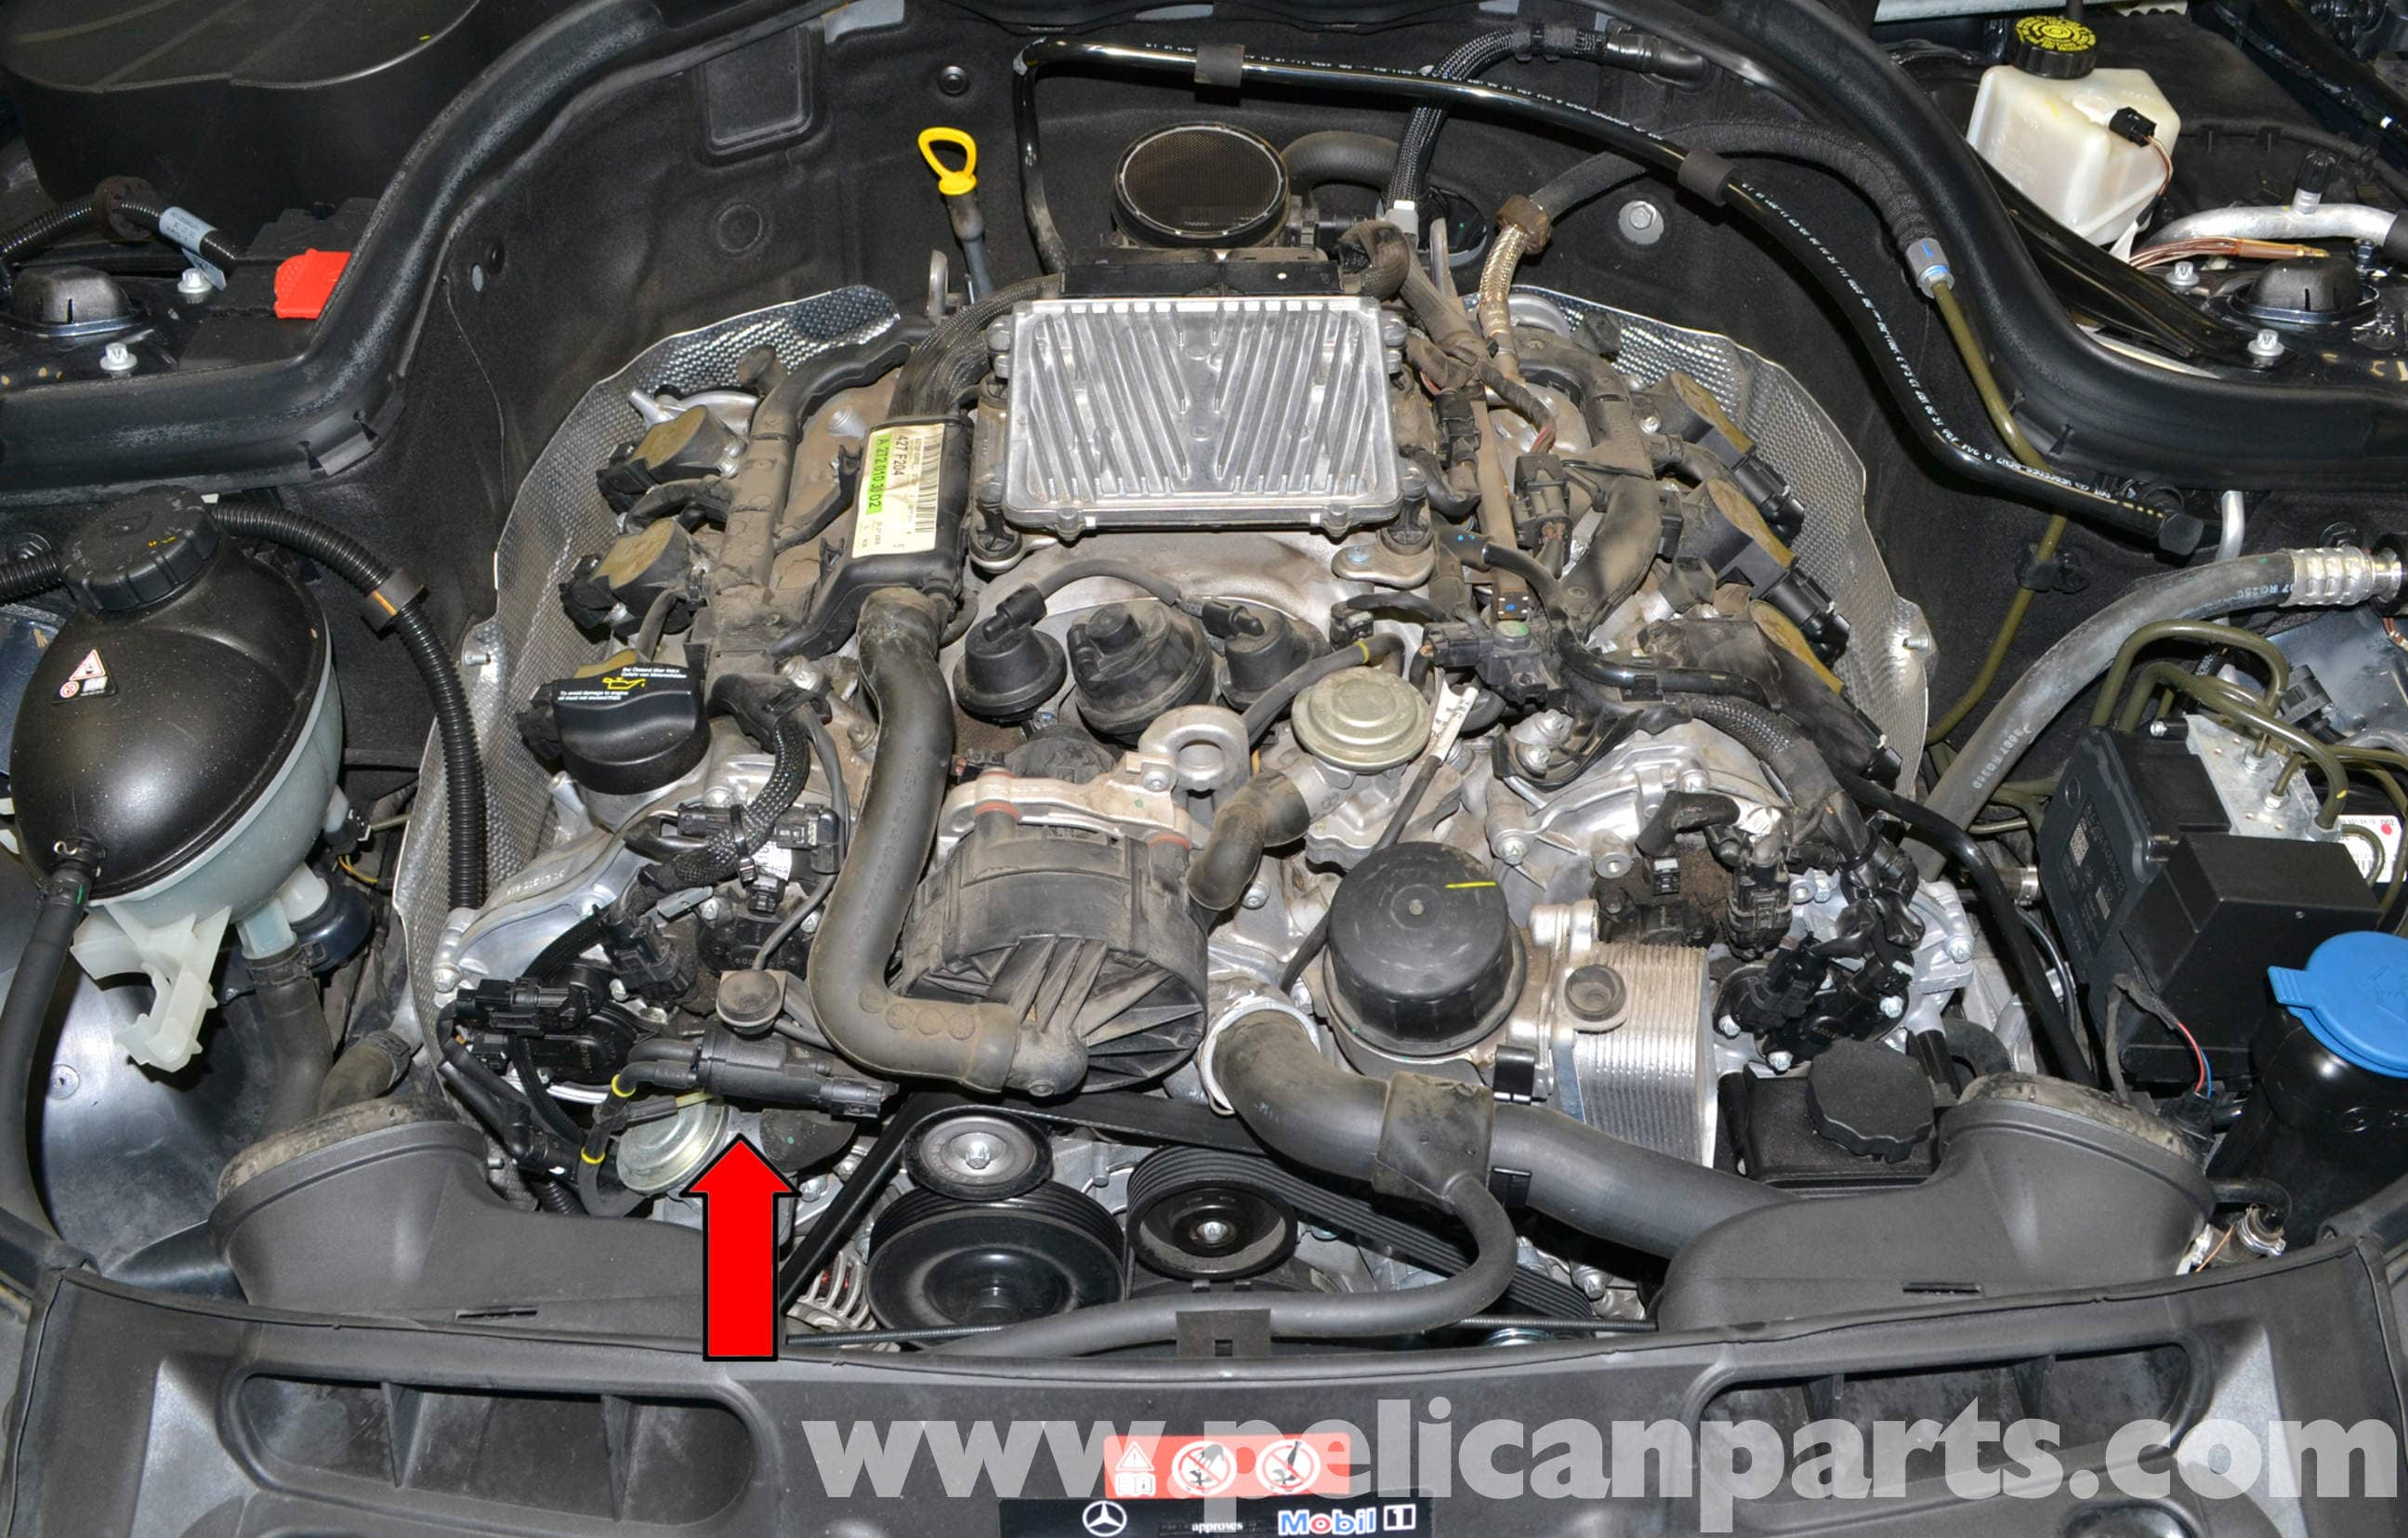 Mercedes Benz W204 Air Injection Change Over Valve